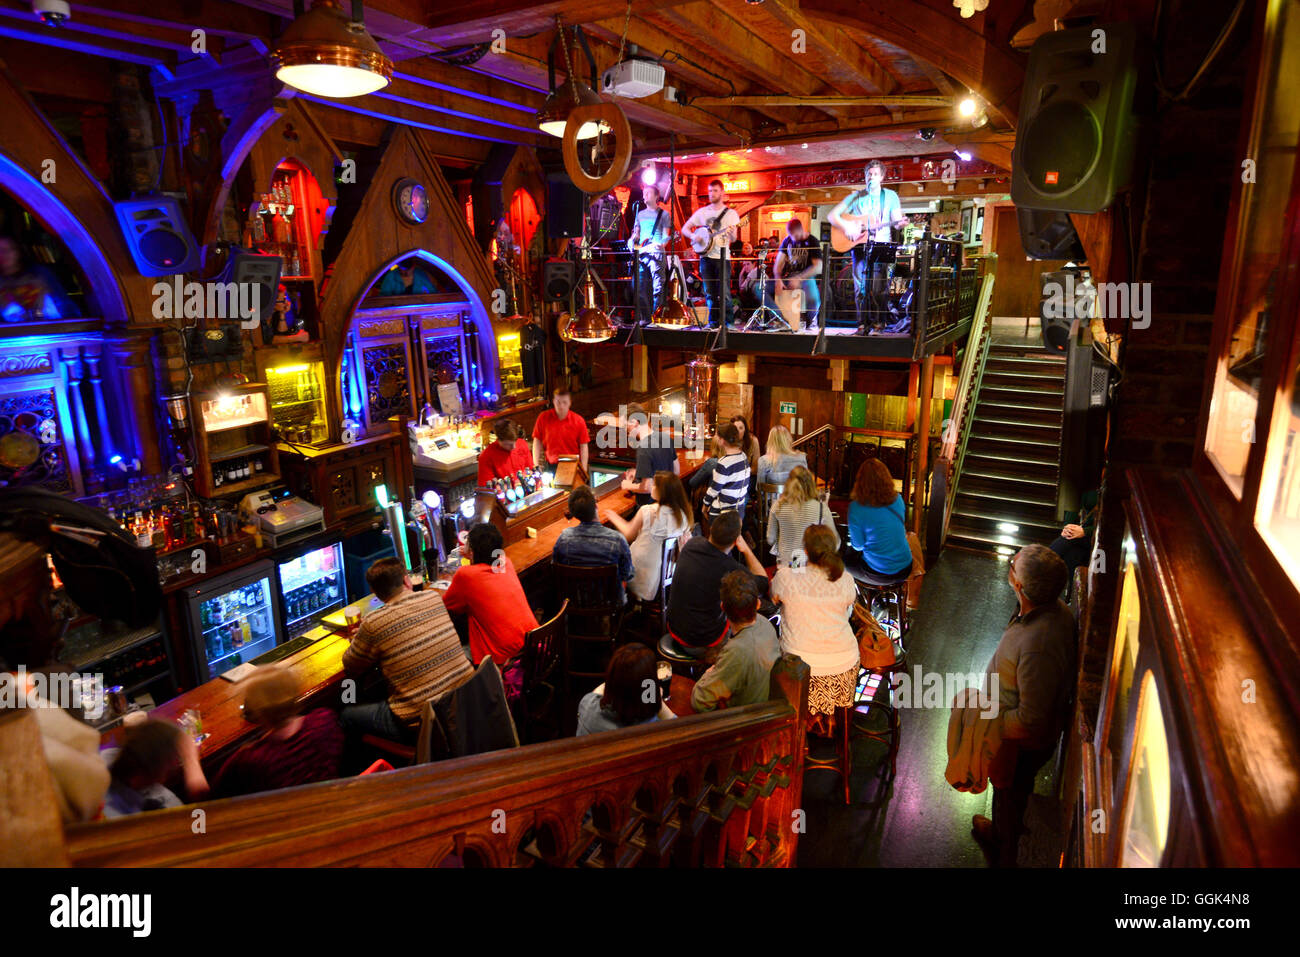 The Quays Bar in Quay Street, Galway, Ireland - Stock Image